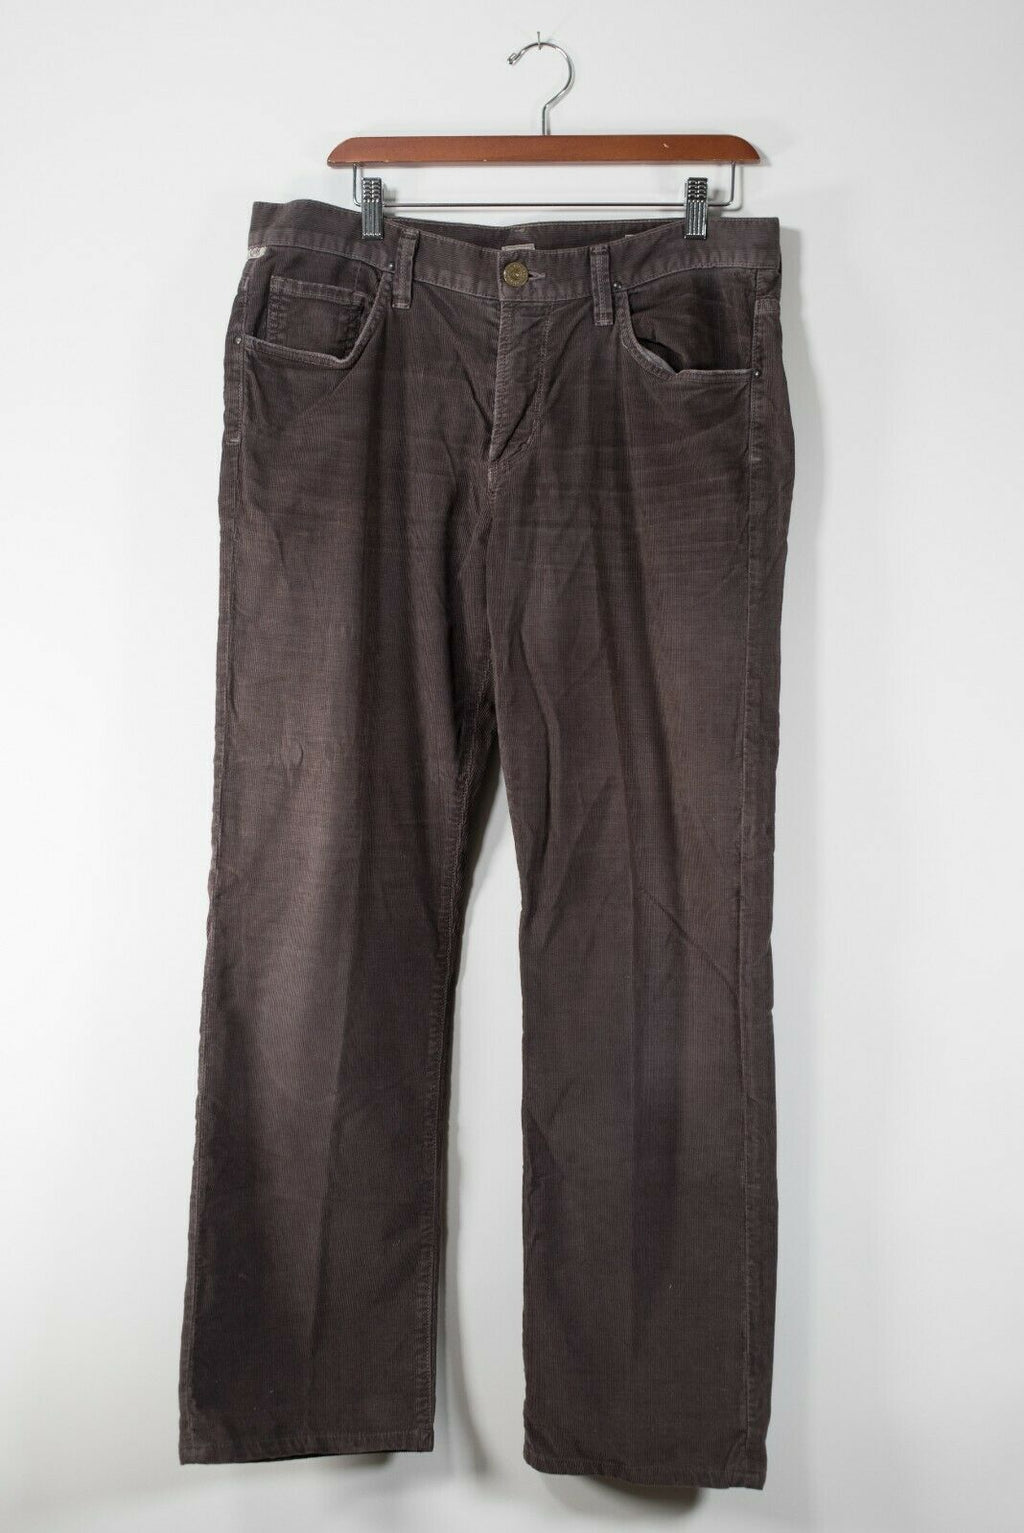 Citizens of Humanity Mens Size 33 Brown Pants Corduroy 5 Pocket Straight Leg